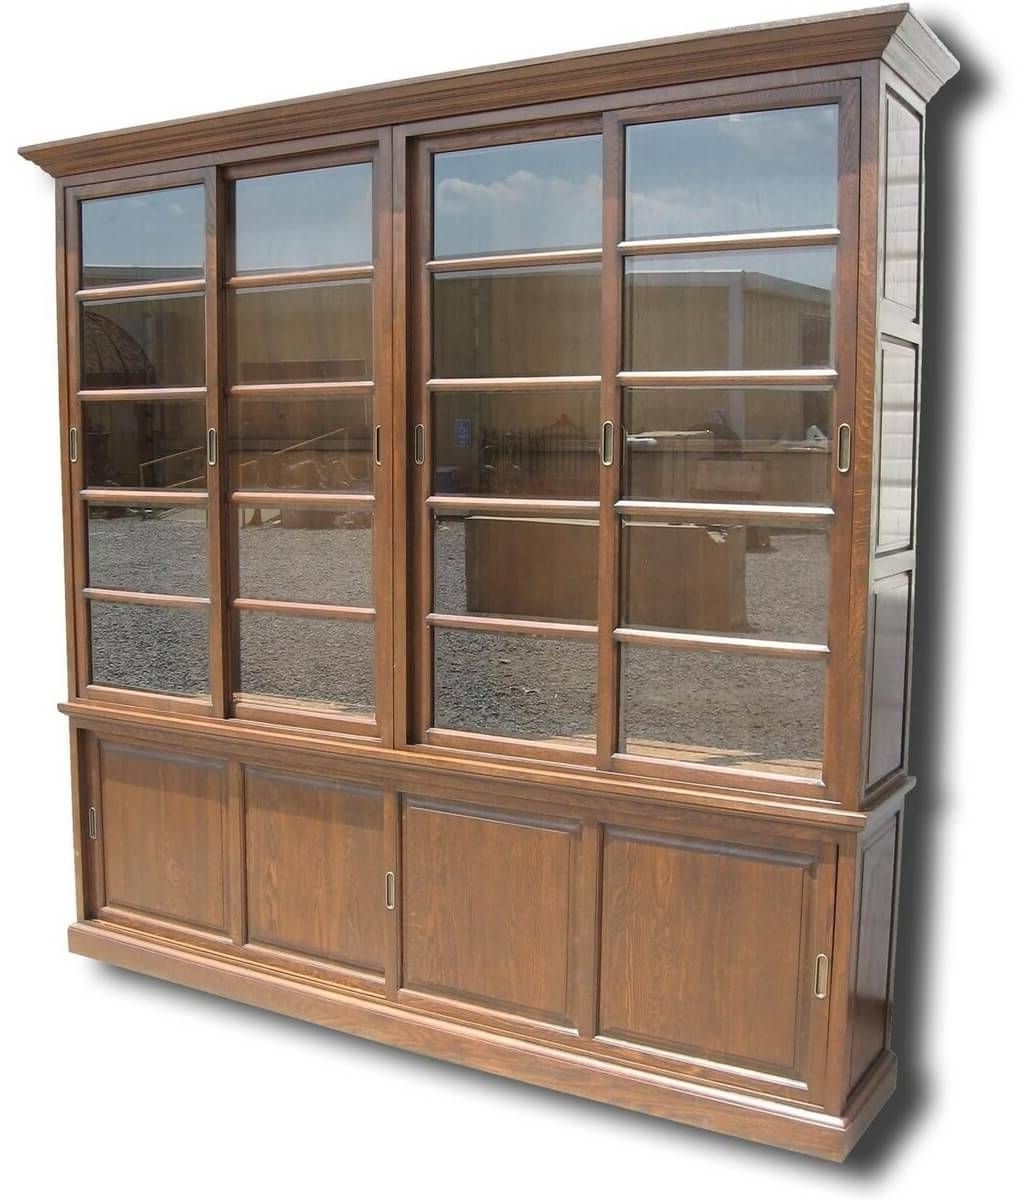 Popular Large Solid Wood Bookcases Regarding Furniture: 4 Shelf Solid Wood Bookcase With Open Front And Back (View 11 of 15)